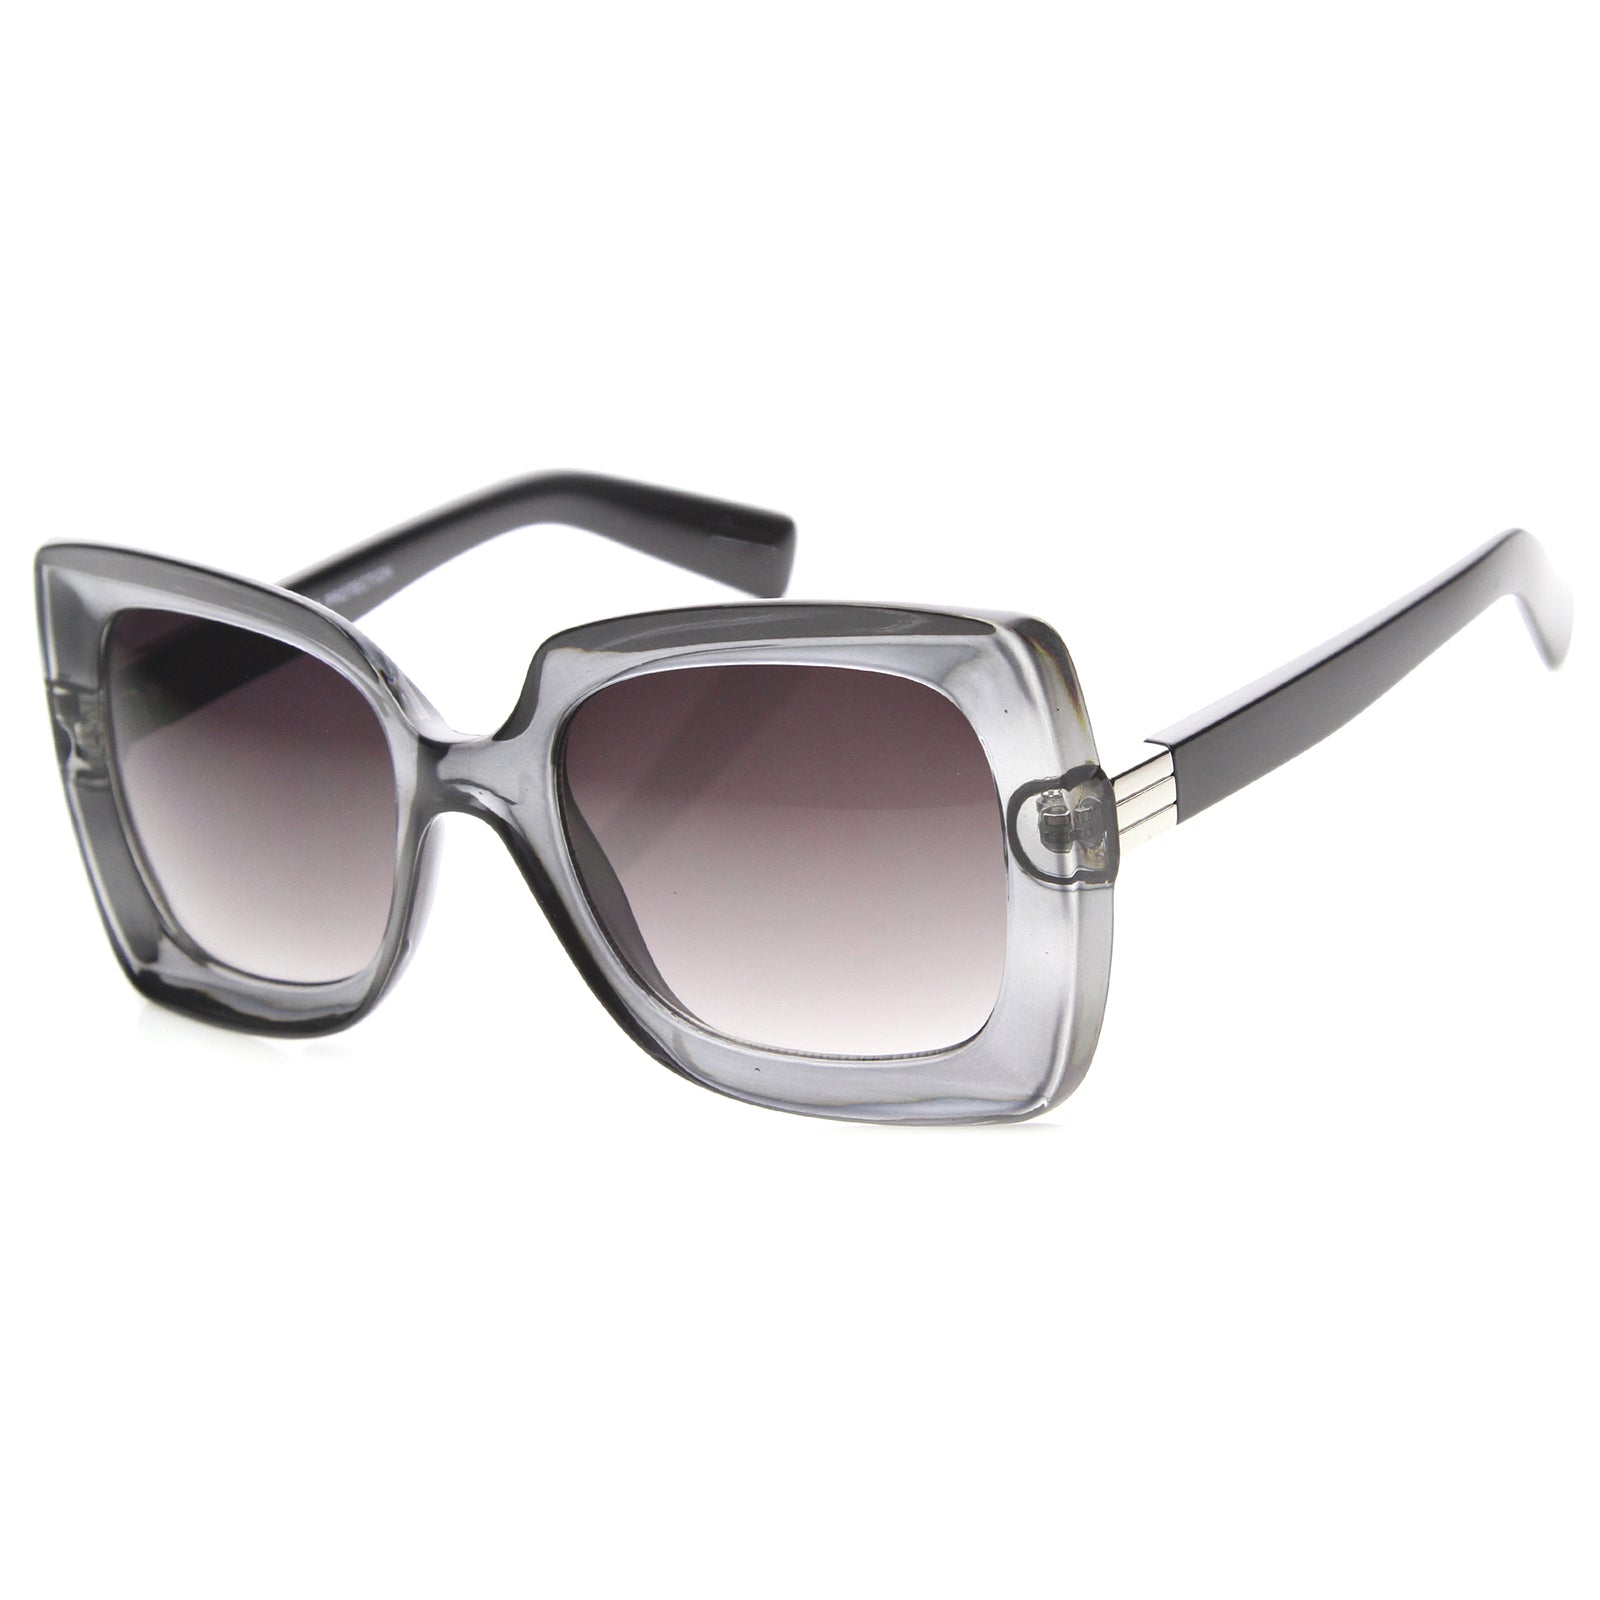 Womens Butterfly Sunglasses With UV400 Protected Gradient Lens - sunglass.la - 8